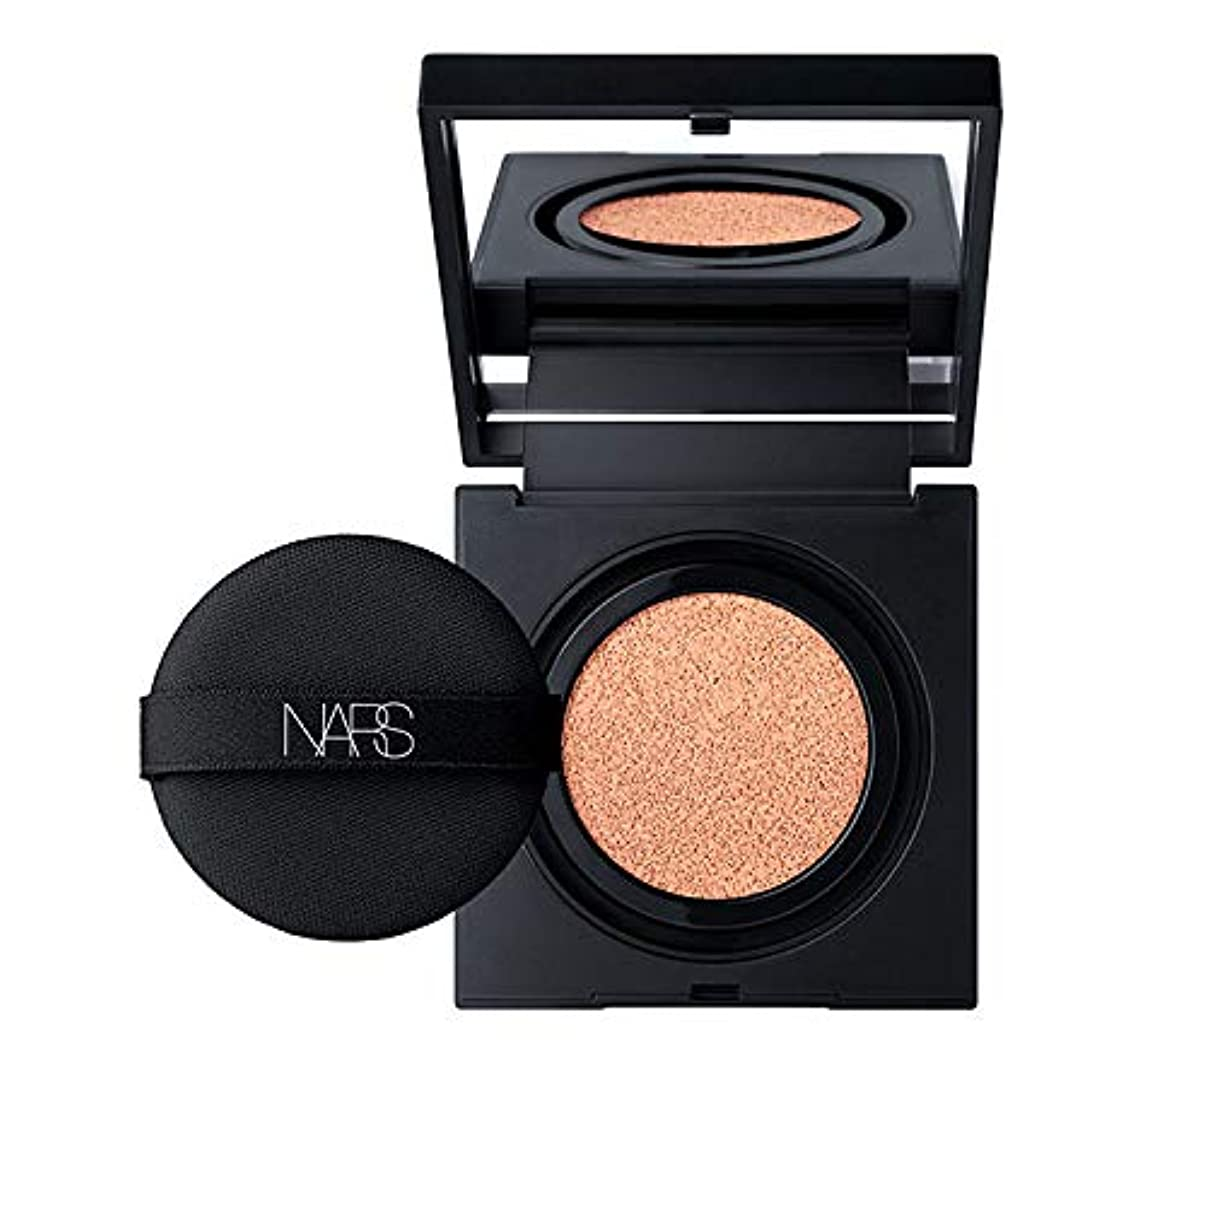 Nars(ナーズ) Natural Radiant Longwear Cushion Foundation 12g # Seoul